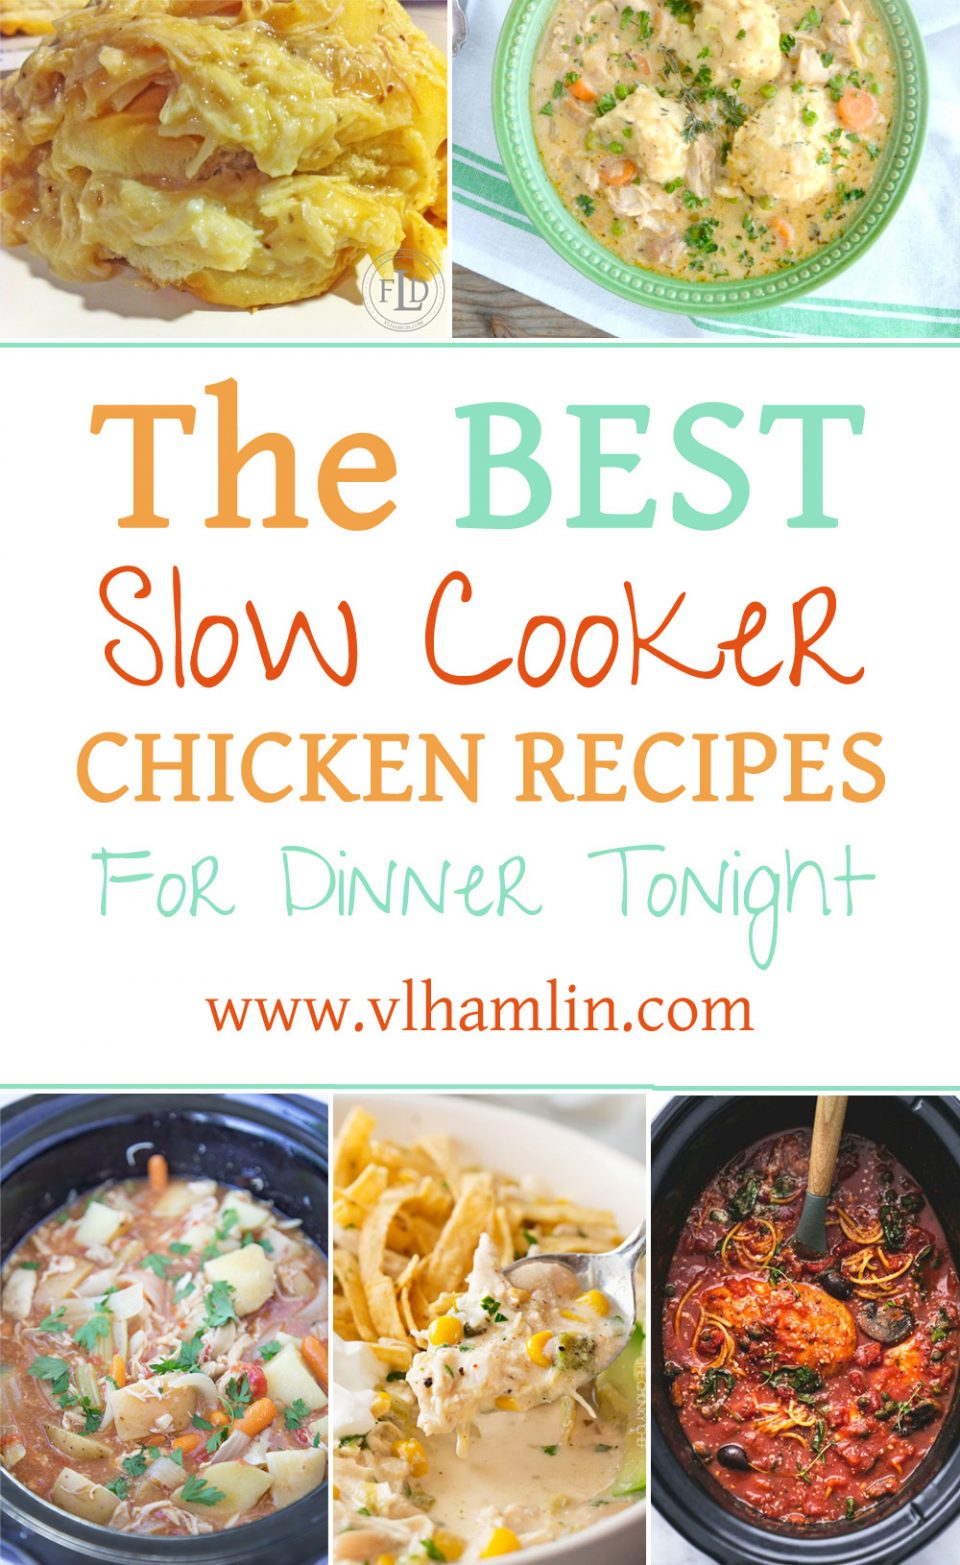 The Best Slow Cooker Chicken Recipes for Dinner Tonight